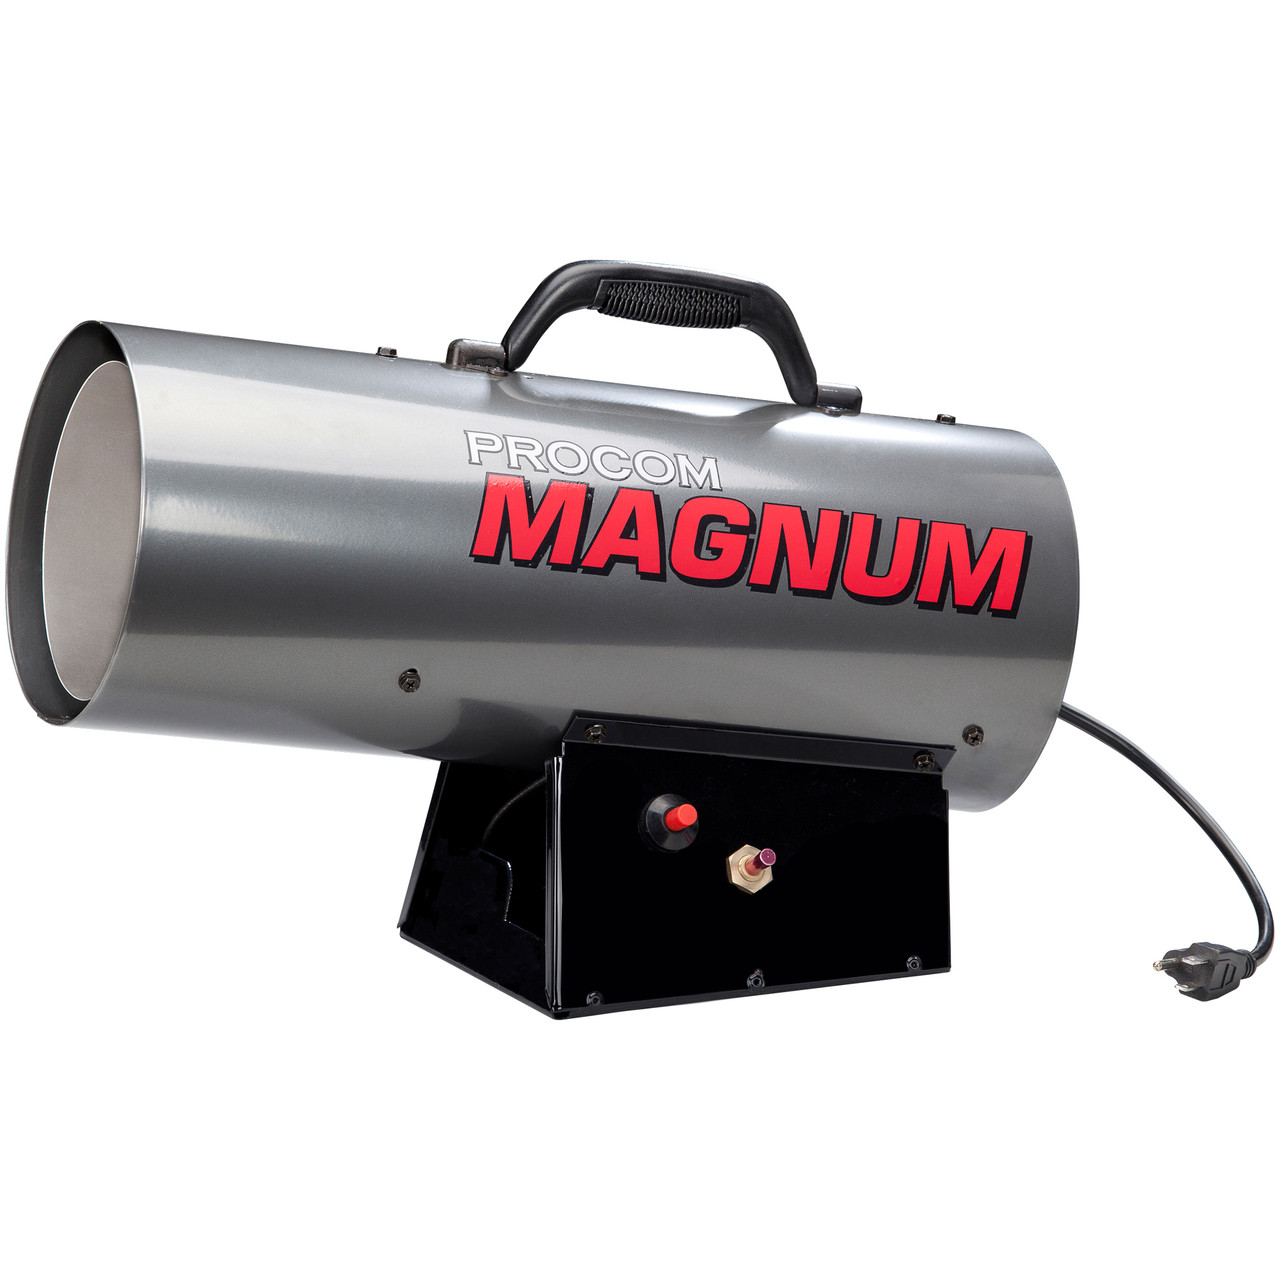 Forced Air Propane Heater >> Procom Magnum Forced Air Propane Heater 40 000 Btu Model Pcfa40